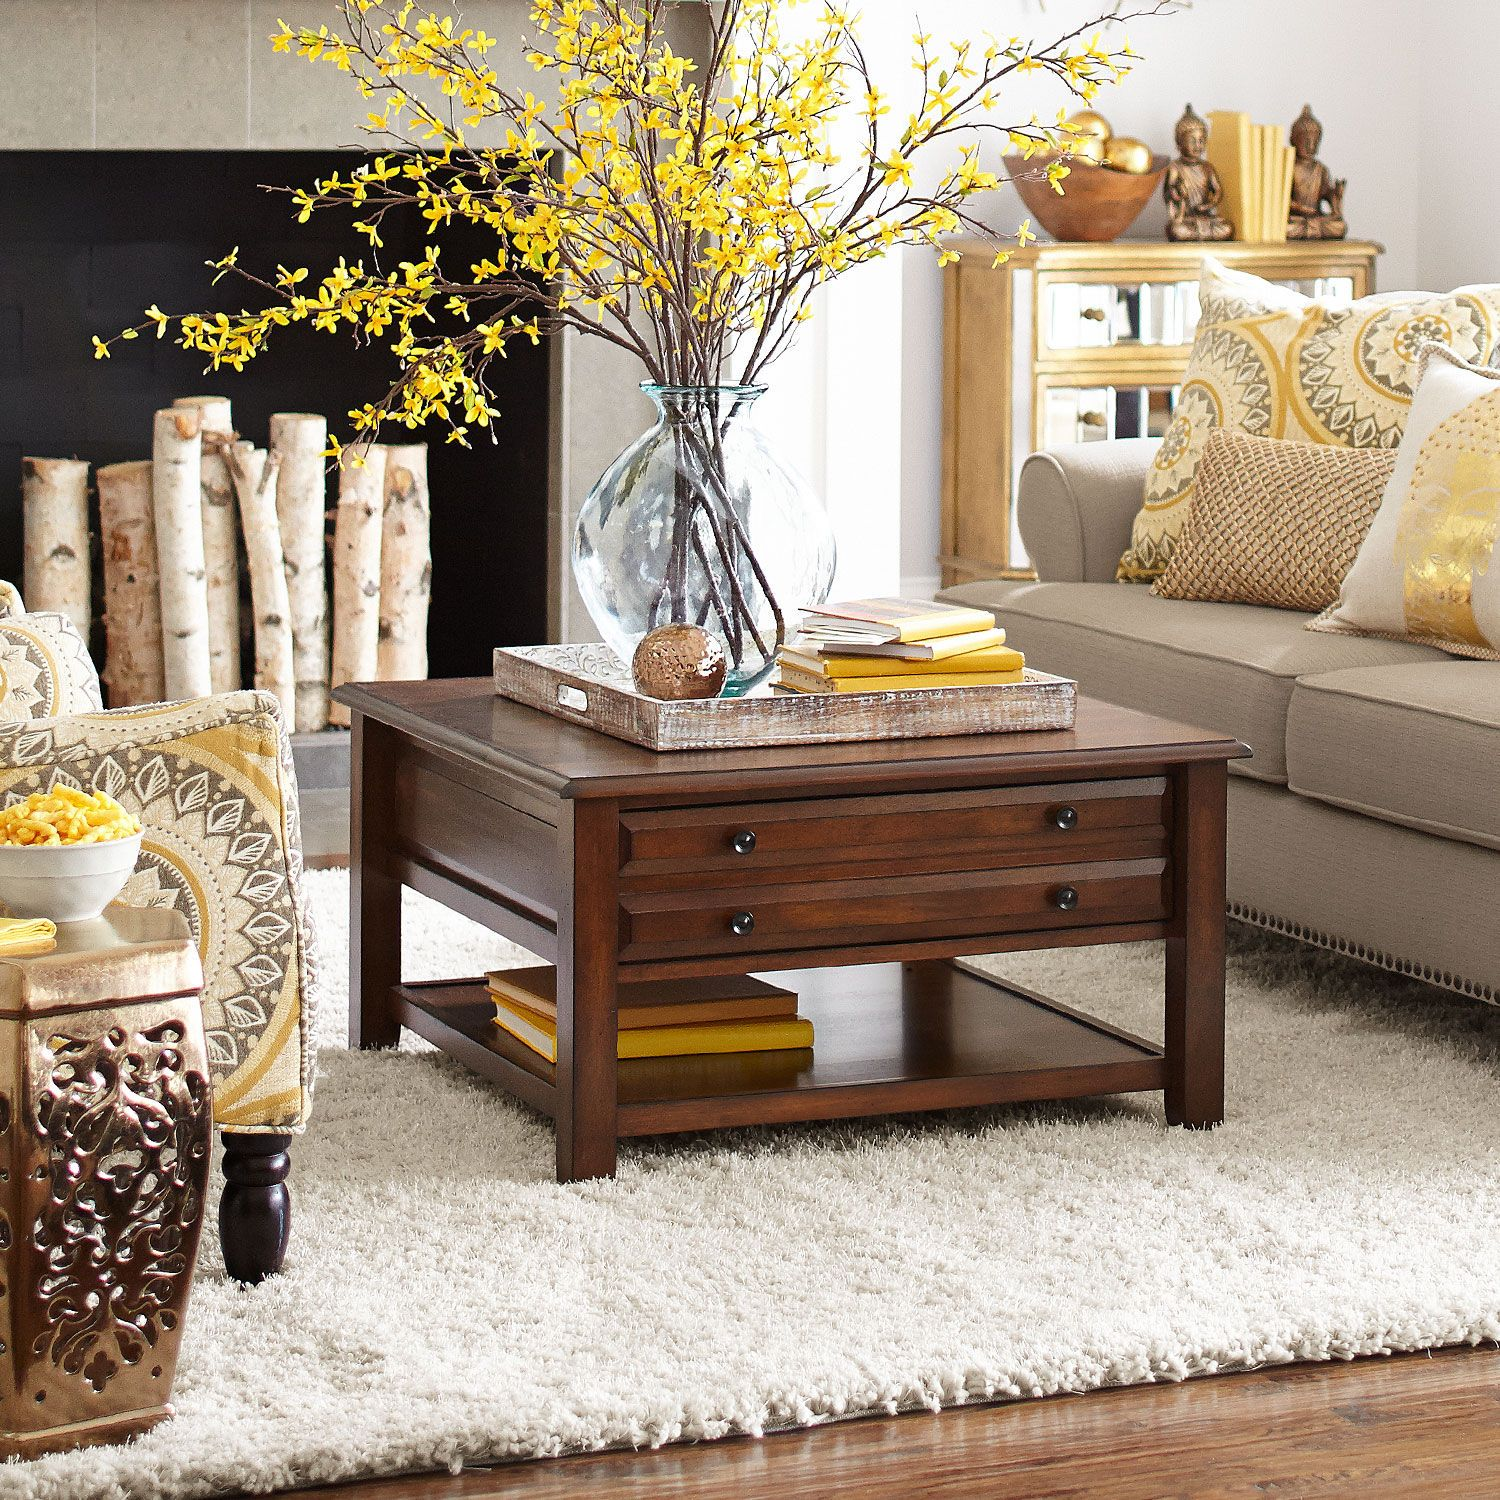 Anywhere Square Coffee Table Tuscan Brown With Images House